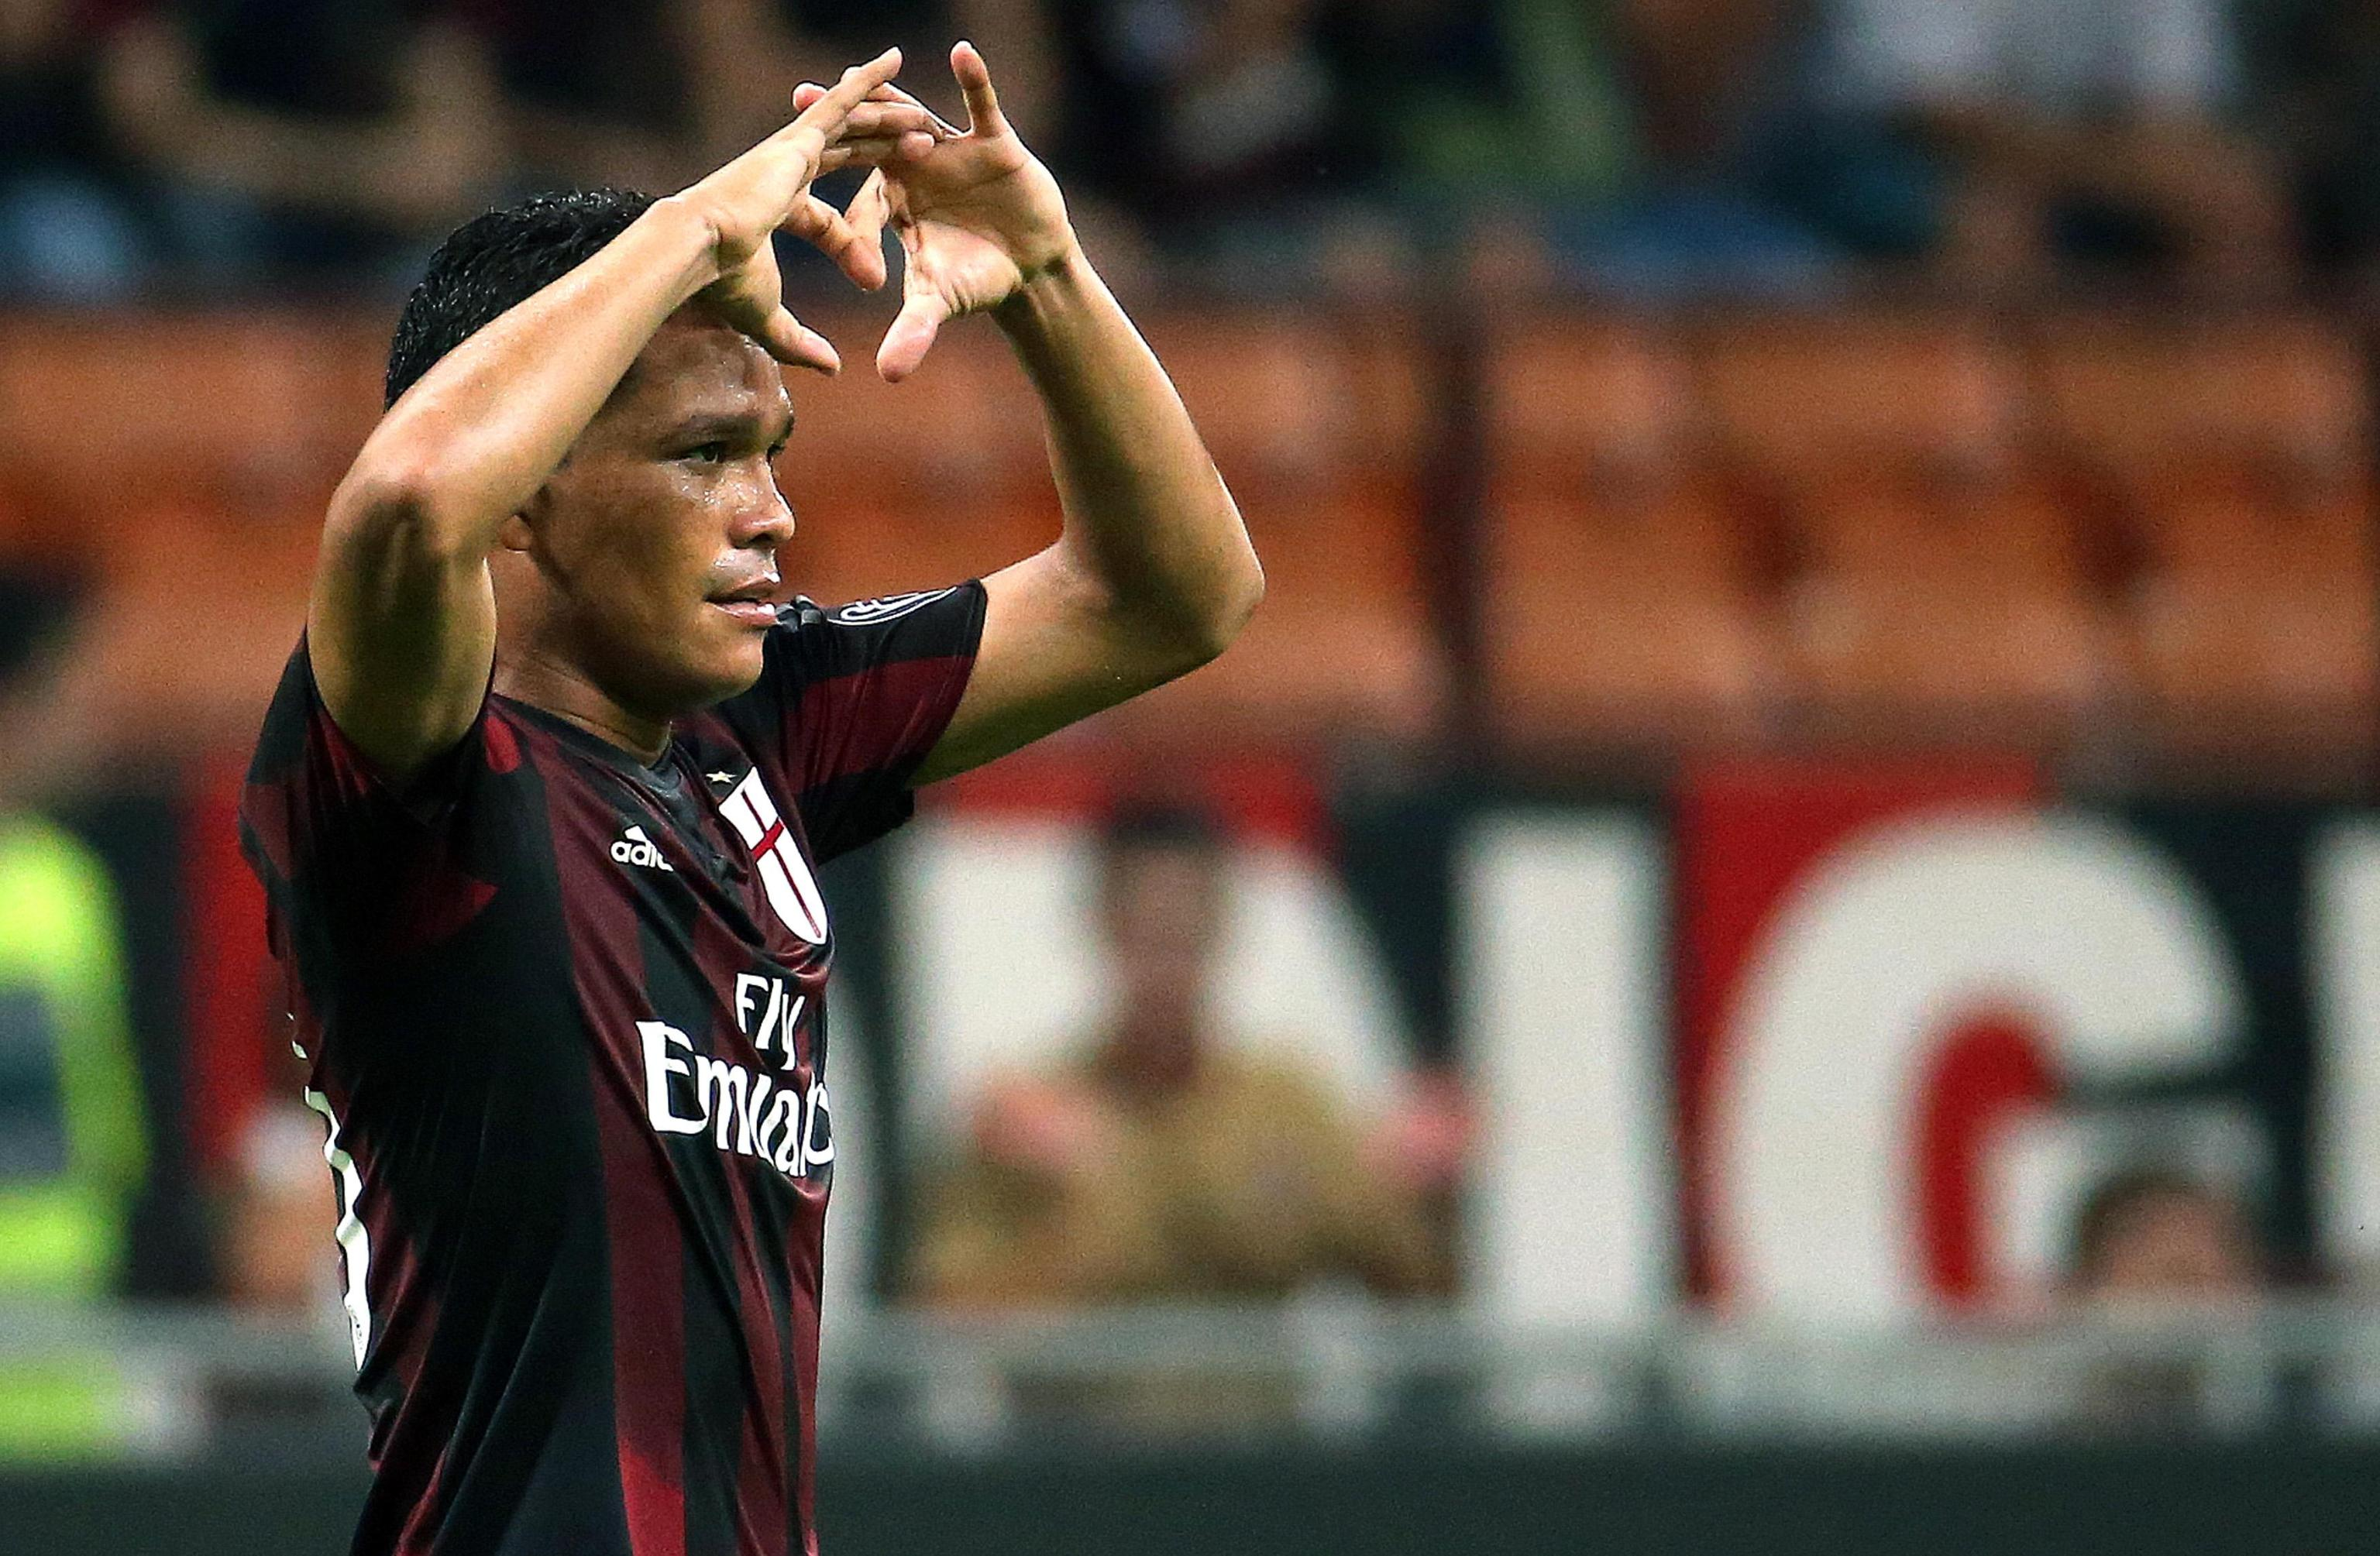 Milan's Carlos Bacca jubilates after scoring the goal during the Italian Serie A soccer match AC Milan vs Empoli FC at Giuseppe Meazza stadium in Milan, Italy, 29 August 2015. ANSA/MATTEO BAZZI